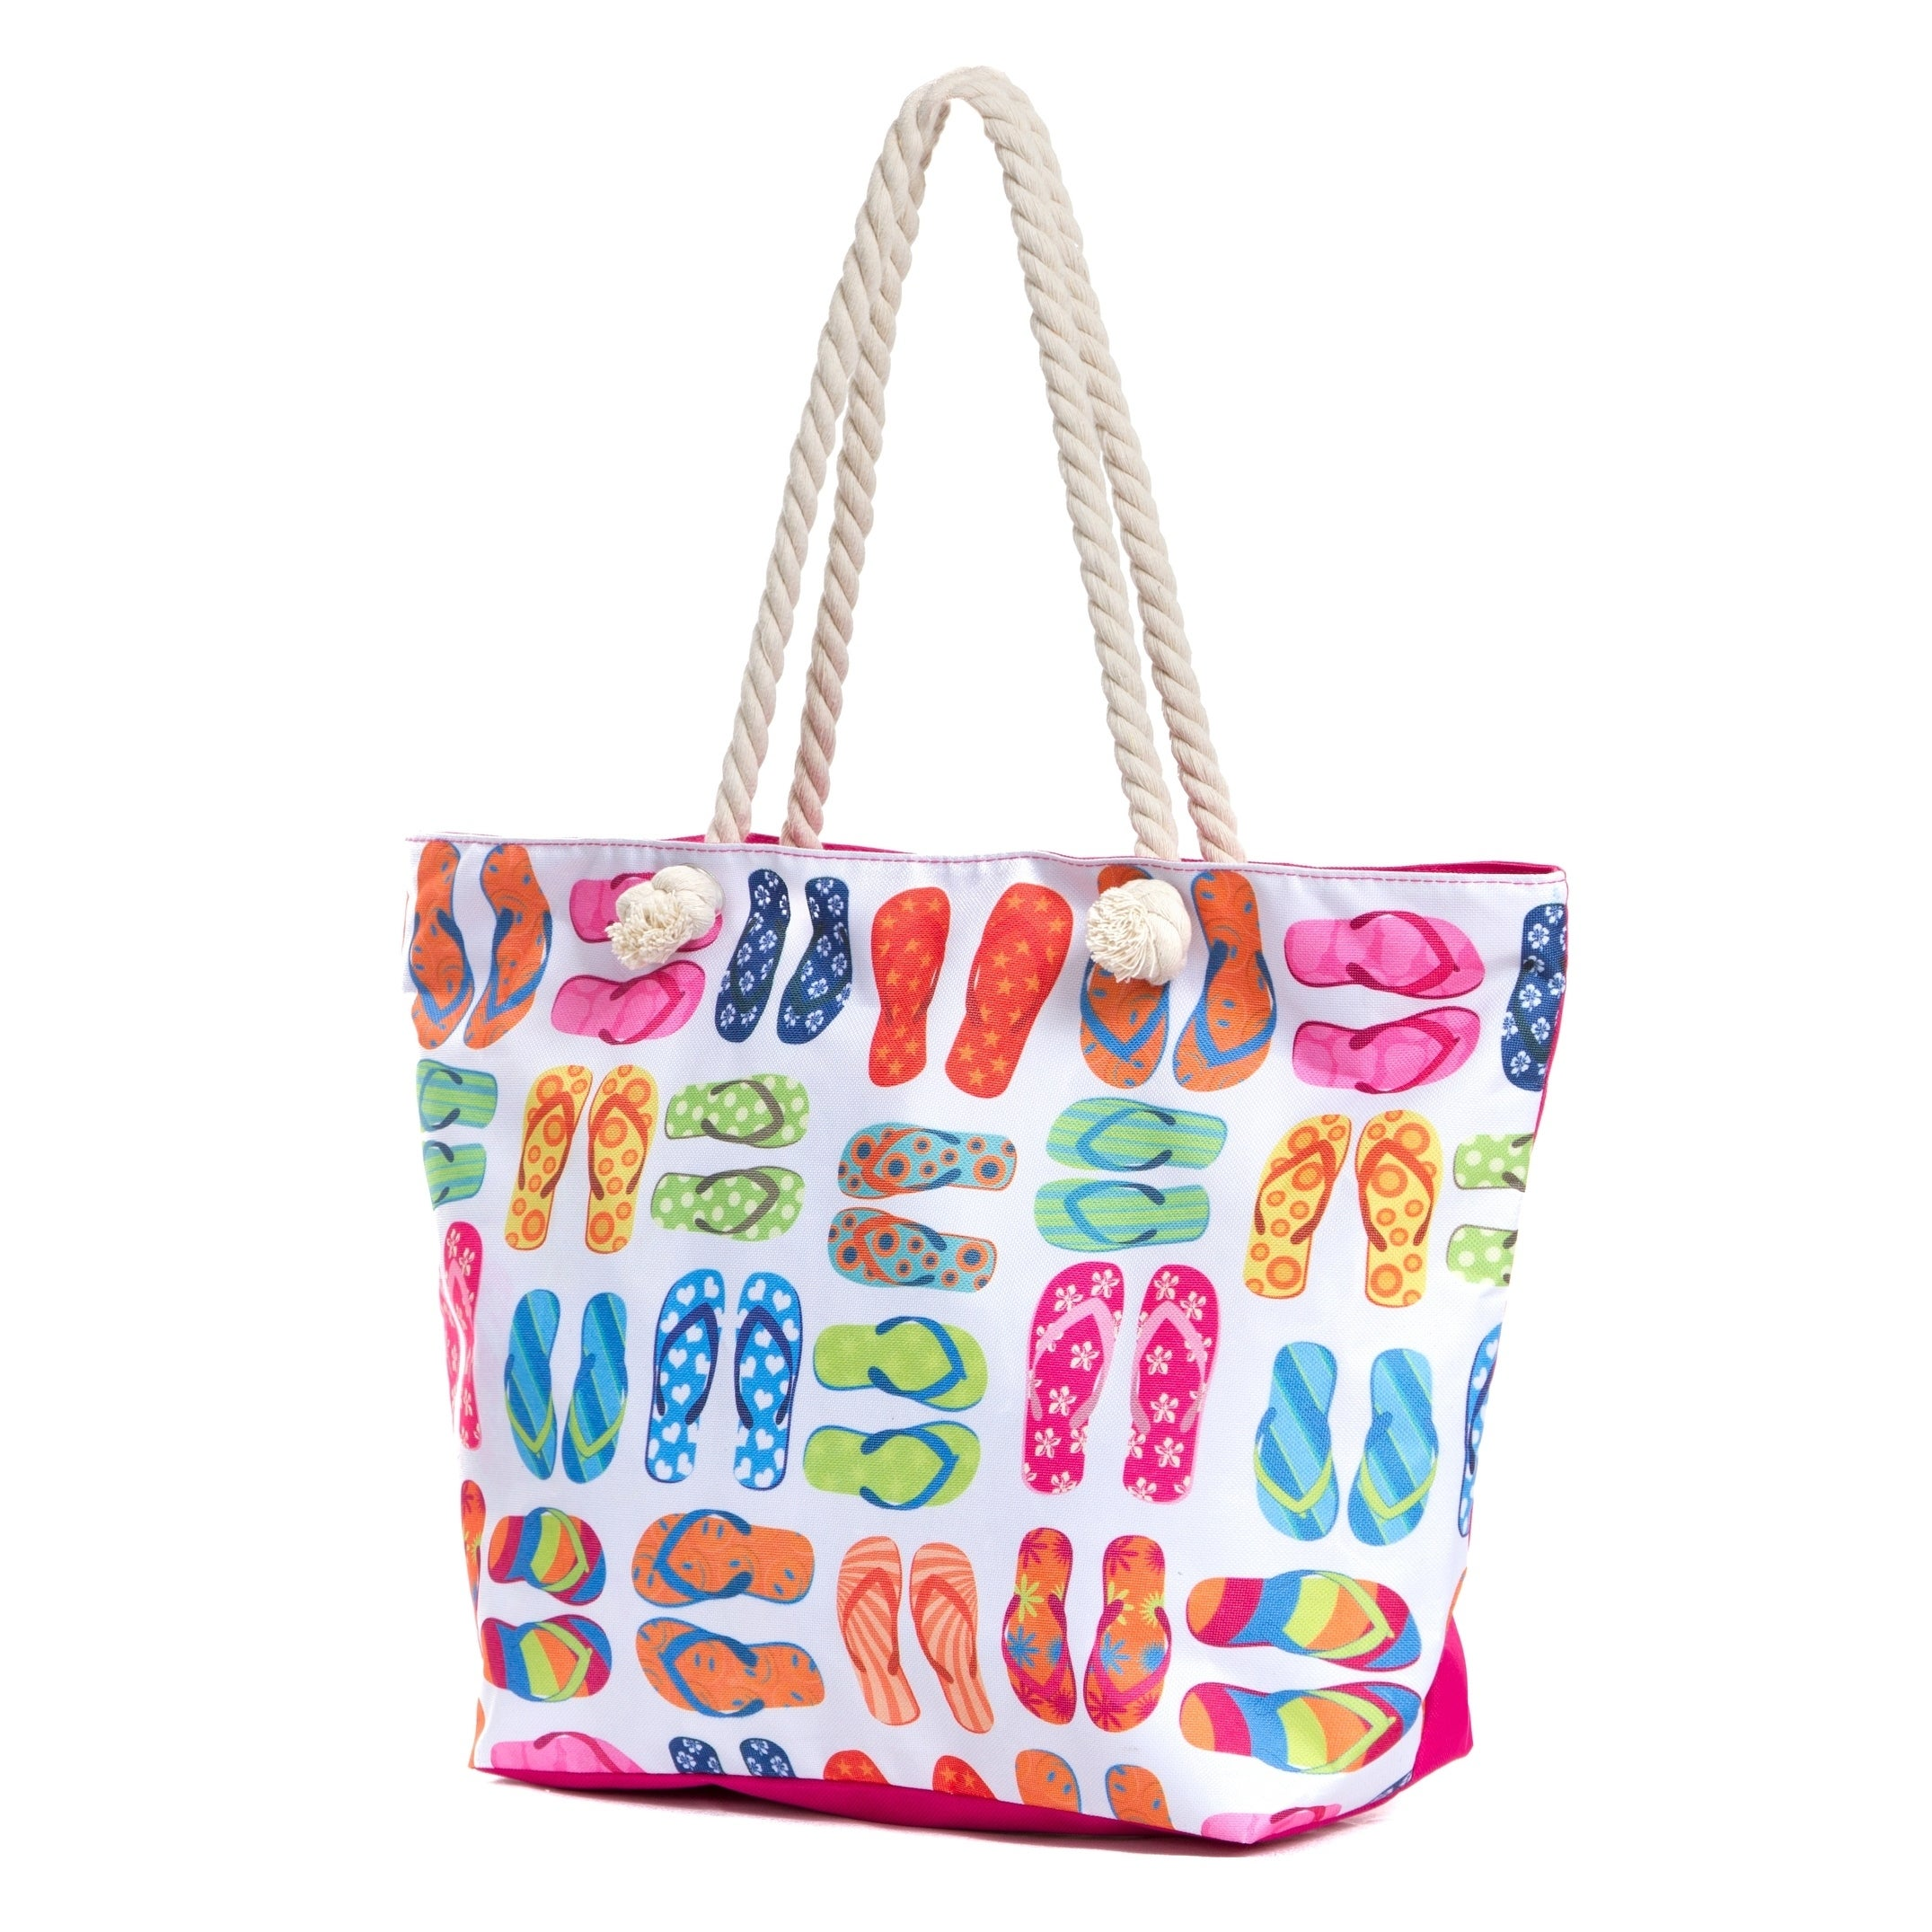 efb39a82d7ea3c Shop Large Beach Tote Bag with Zipper, Water Resistant Canvas Beach Bag -  Free Shipping On Orders Over $45 - Overstock - 21135661